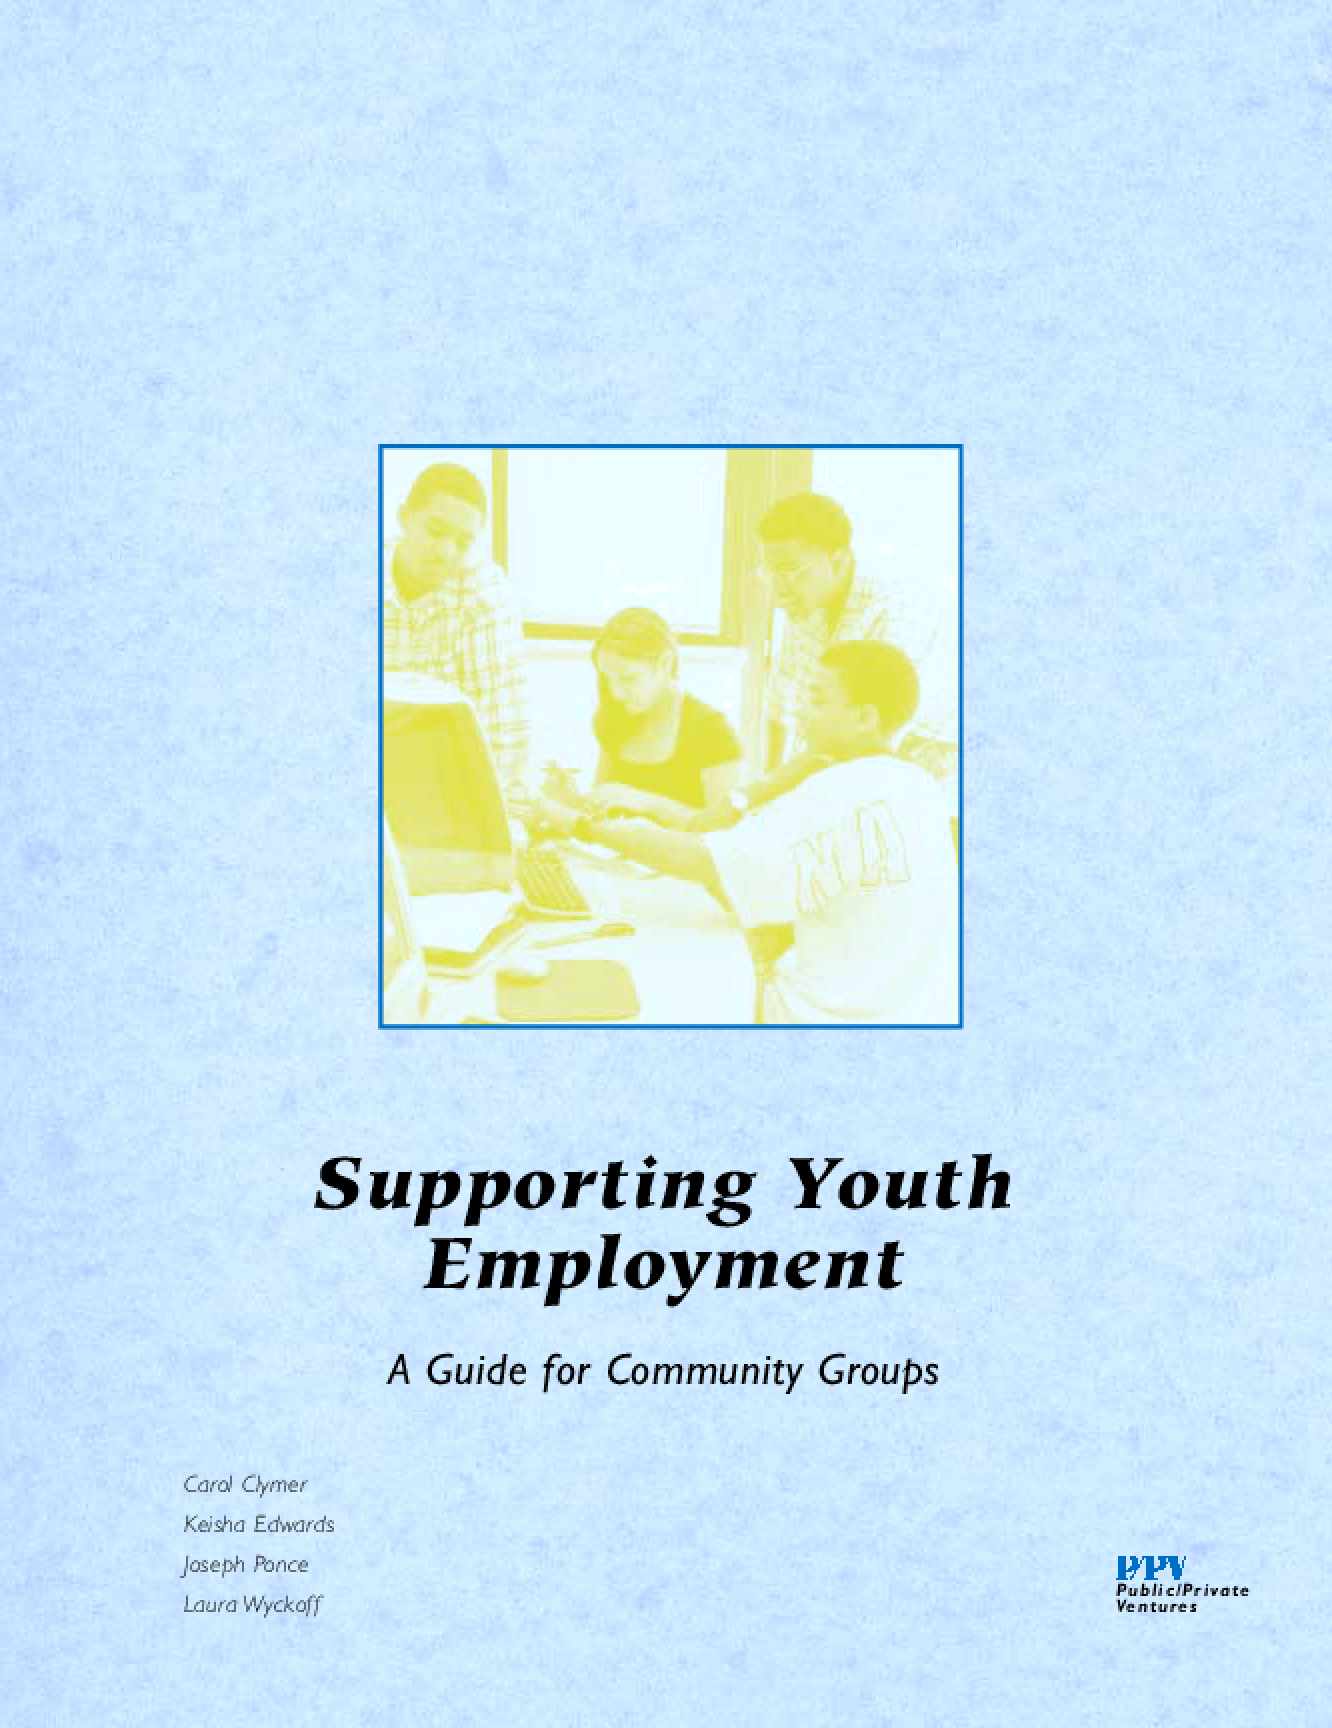 Supporting Youth Employment: A Guide for Community Groups